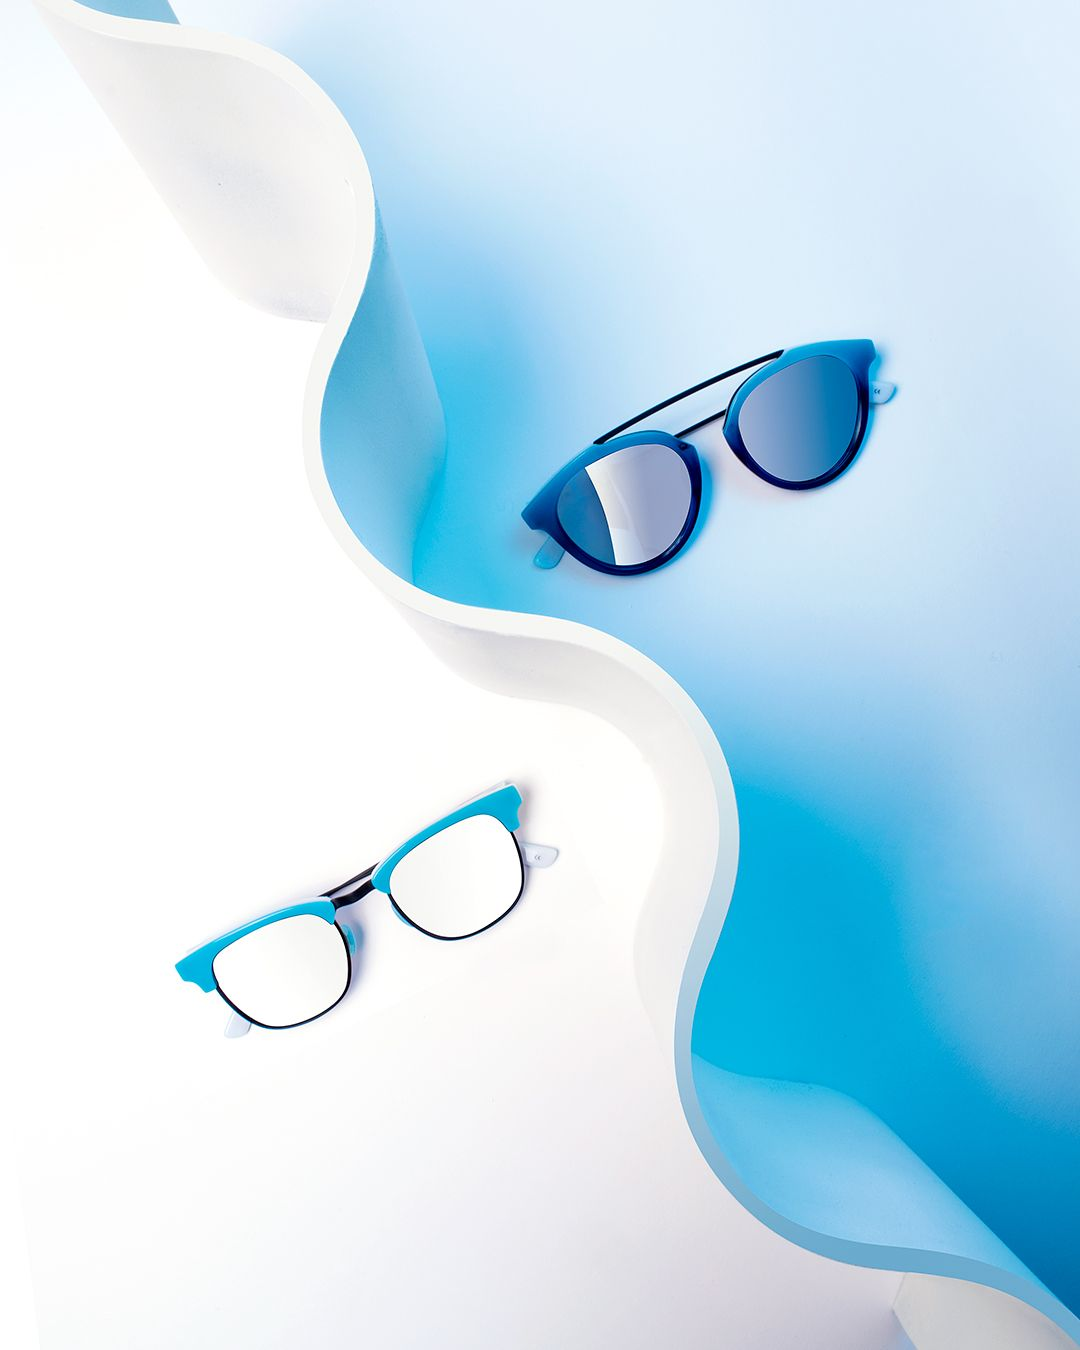 The Shark Attack collection possesses an acetate that captures the ocean's vivid blue hues from rich Prussian to striking azure.  #westwardleaning